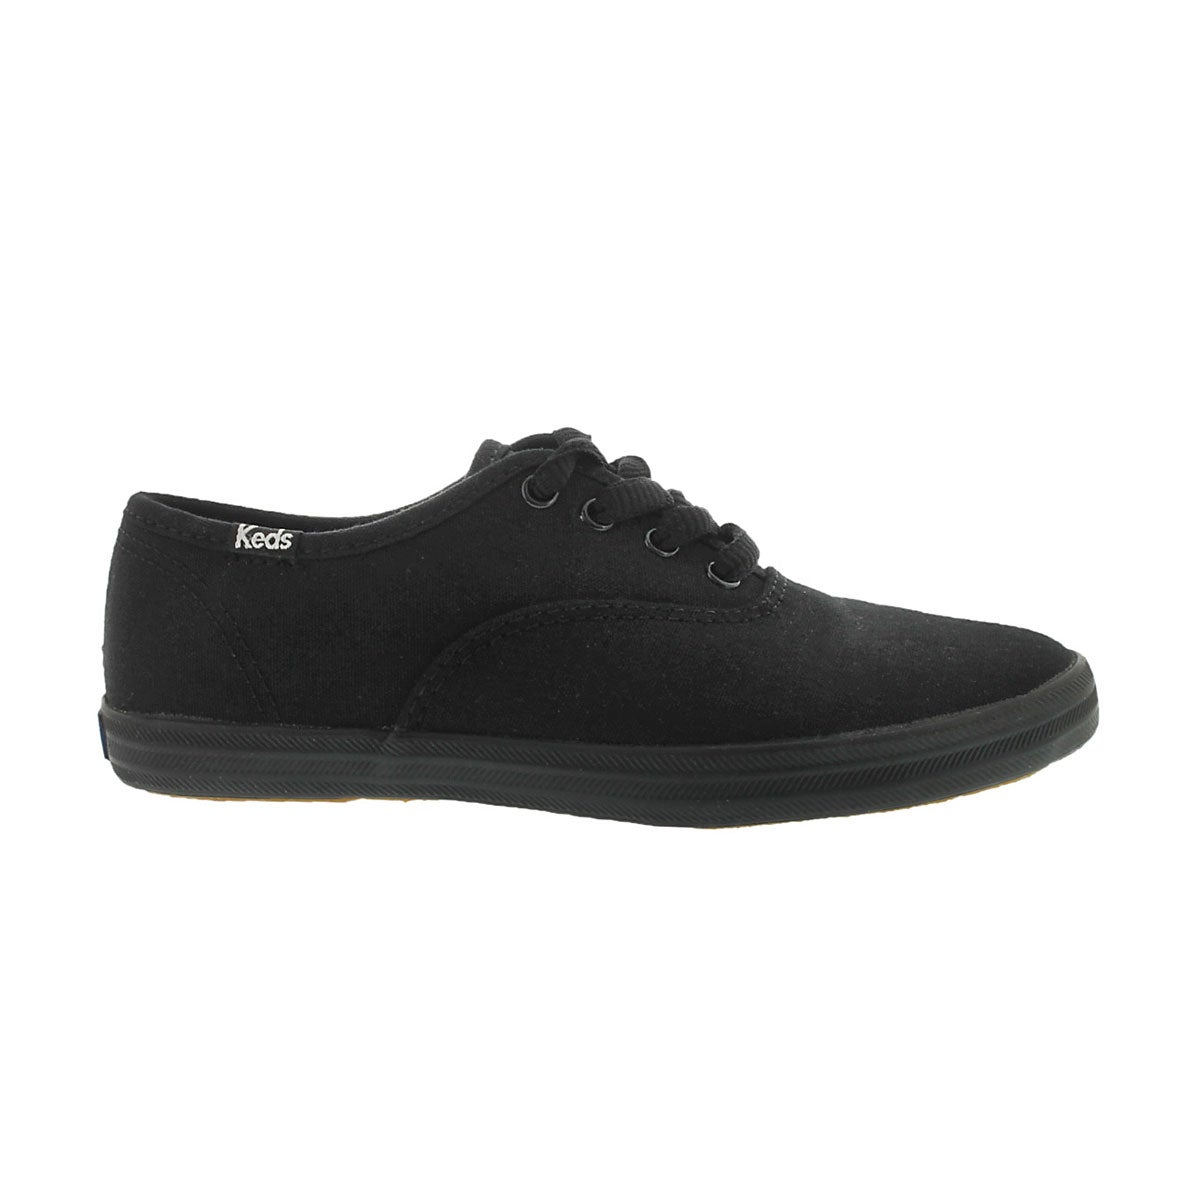 Grls Champion blk/blk canvas CVO sneak